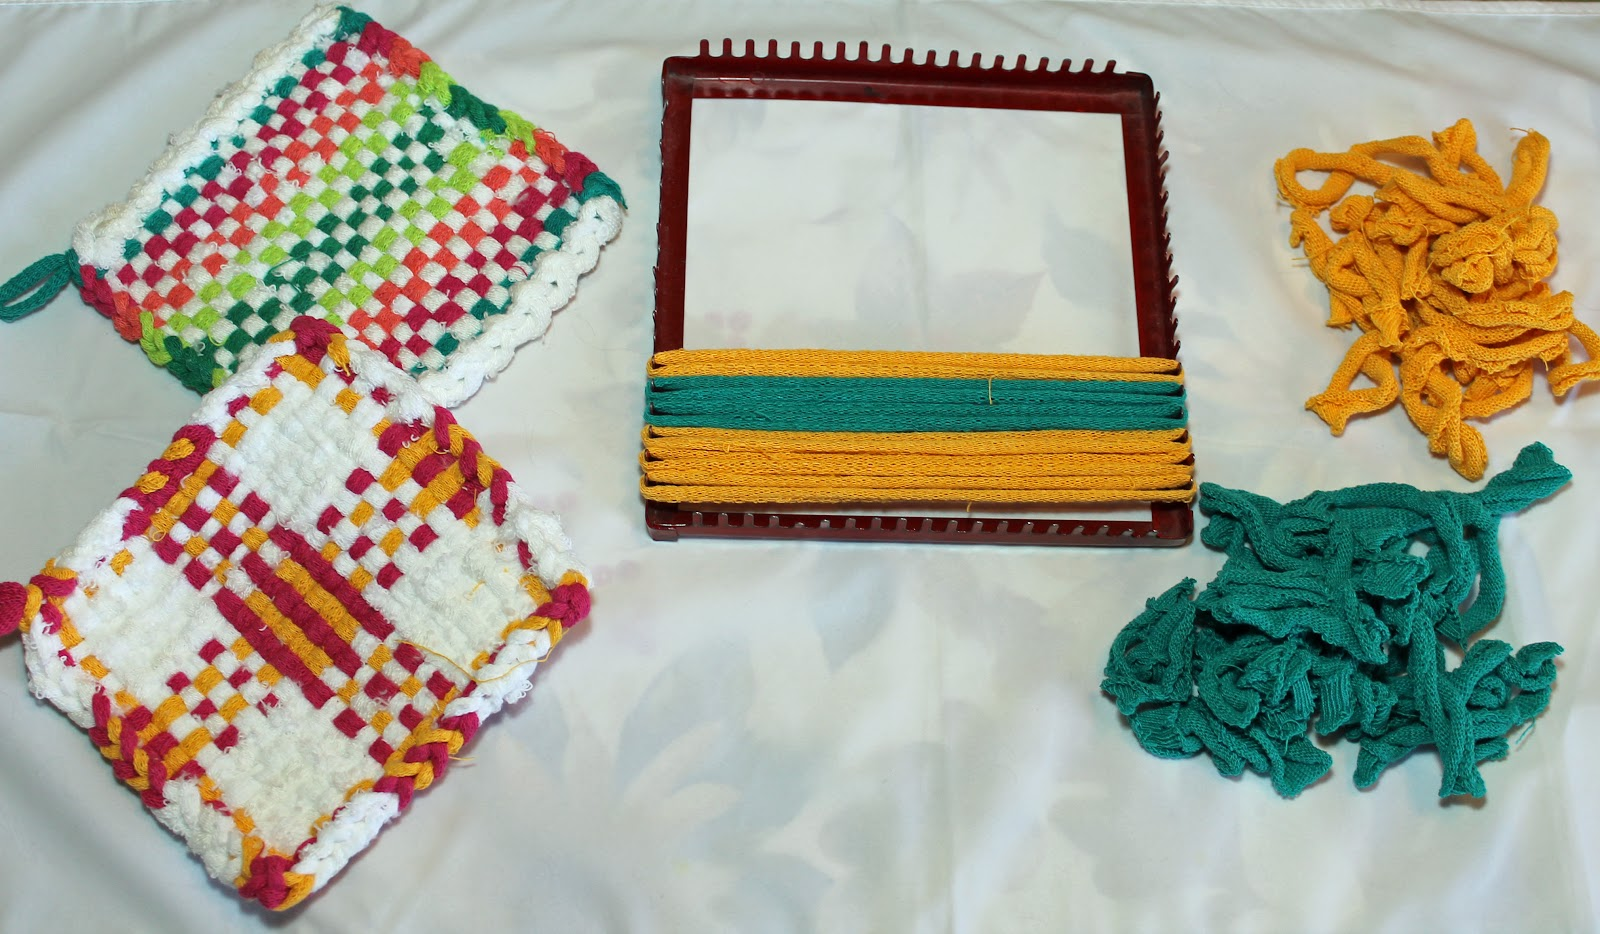 loom and potholders.jpg